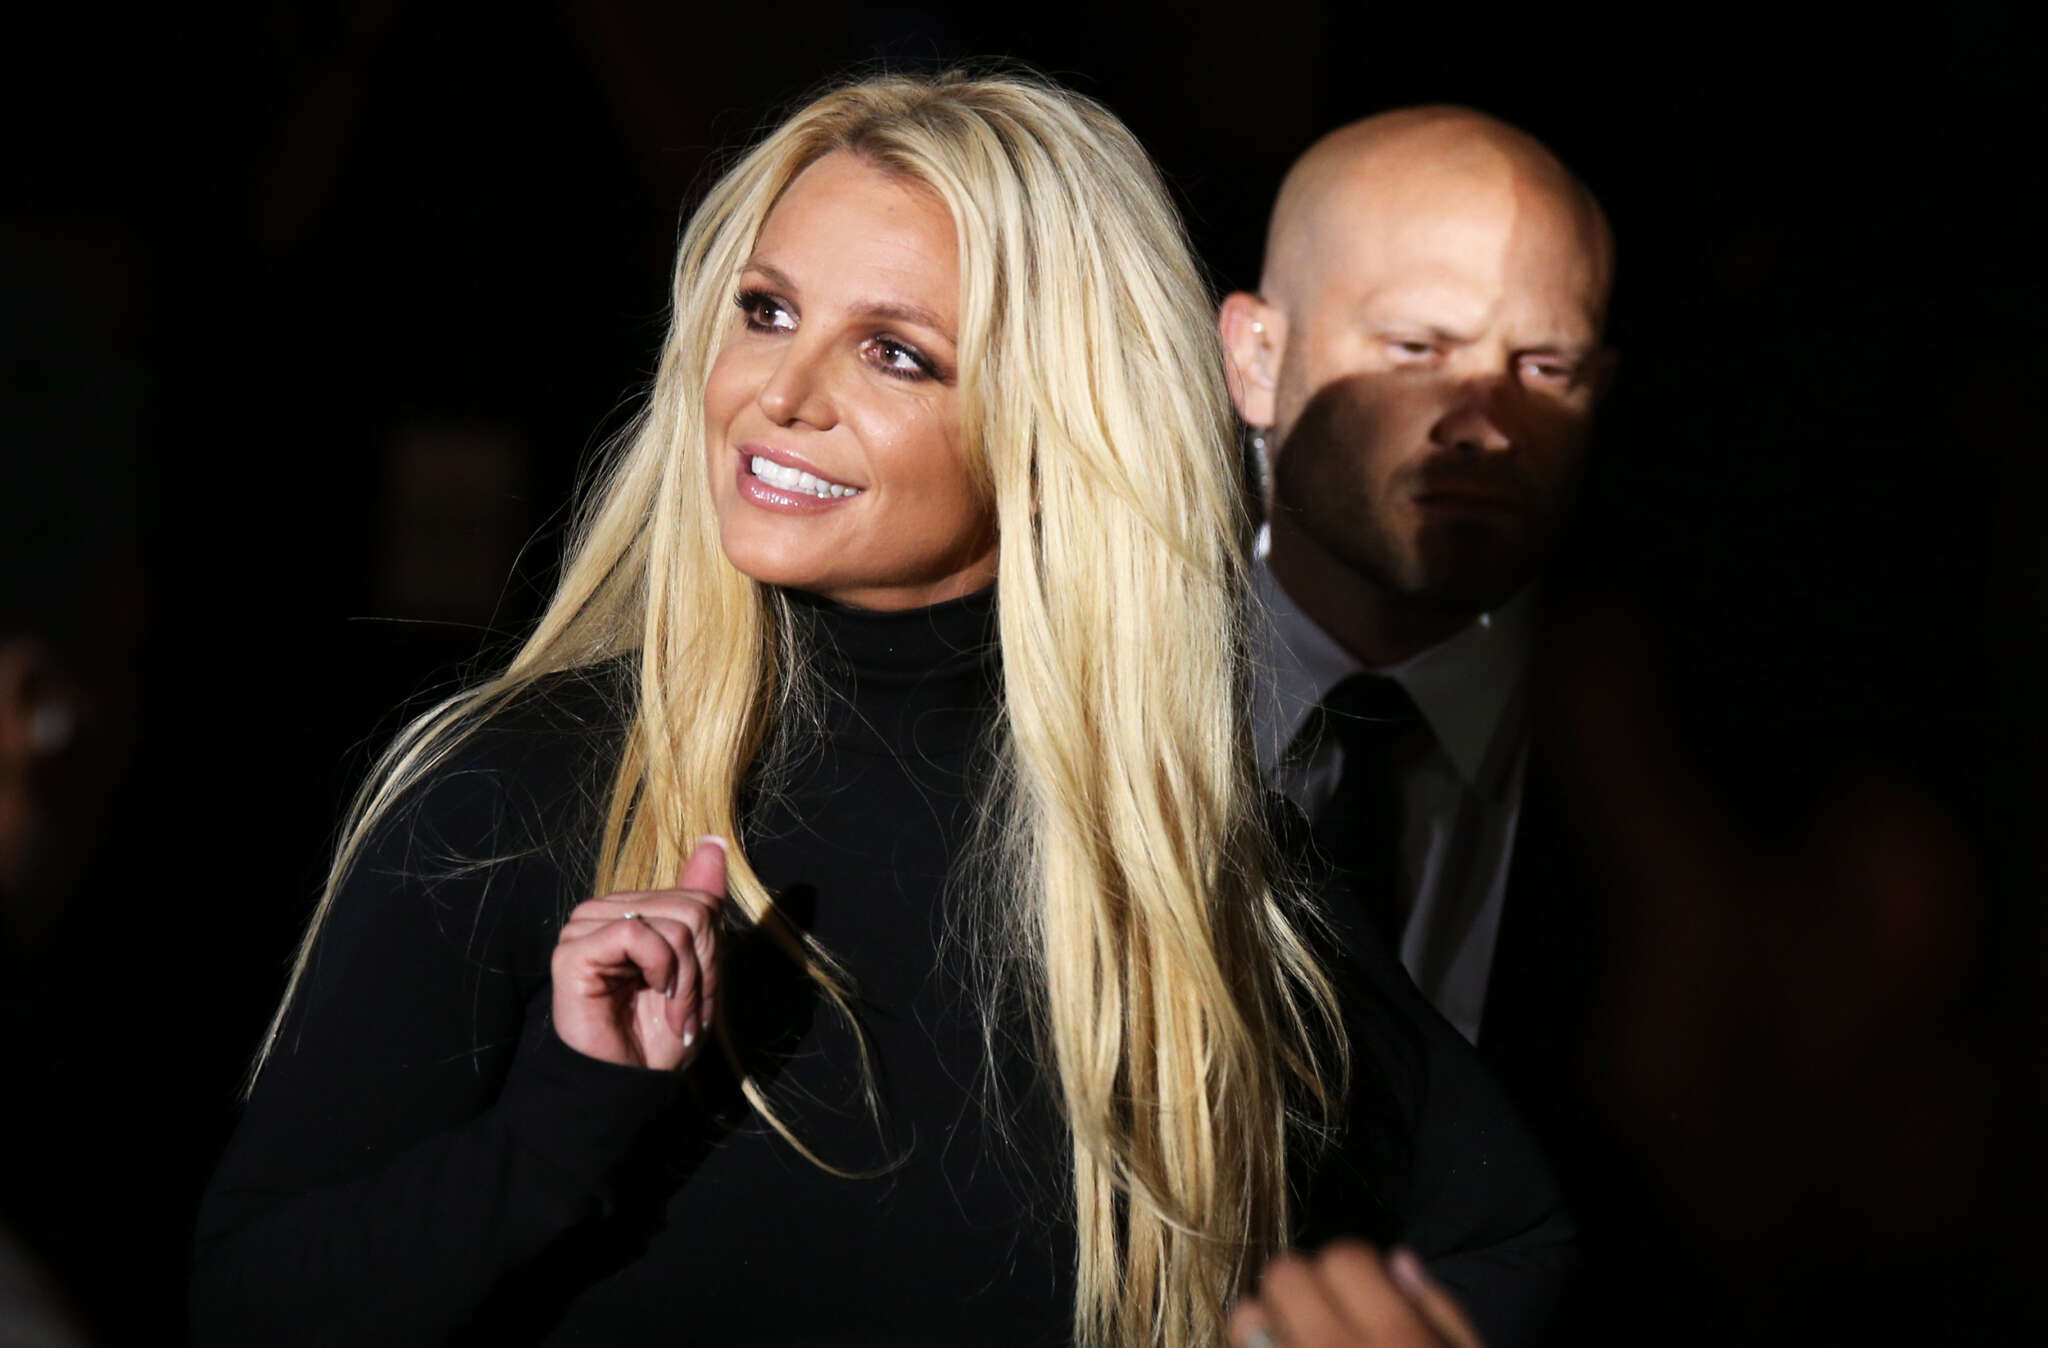 britney-spears-fans-react-to-her-father-being-allowed-to-continue-as-her-co-conservator